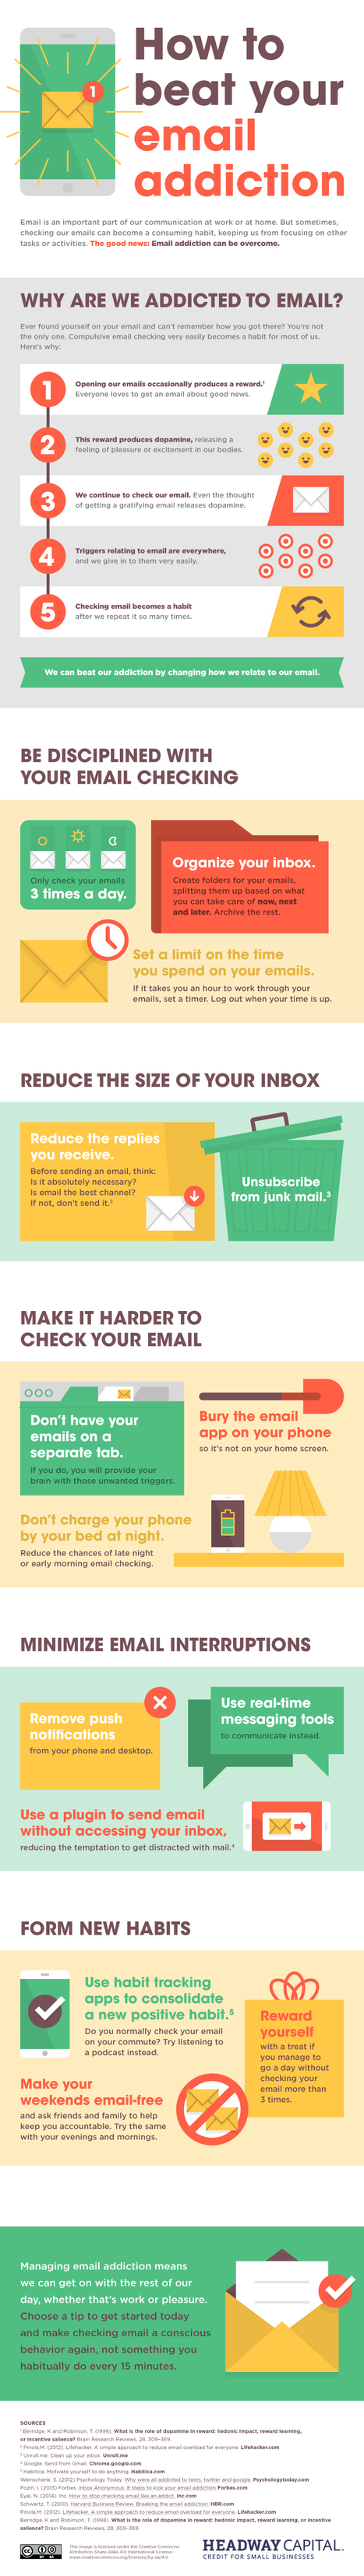 Tips To Help You Beat Your Addiction Email #infographic  | MarketingHits | Scoop.it